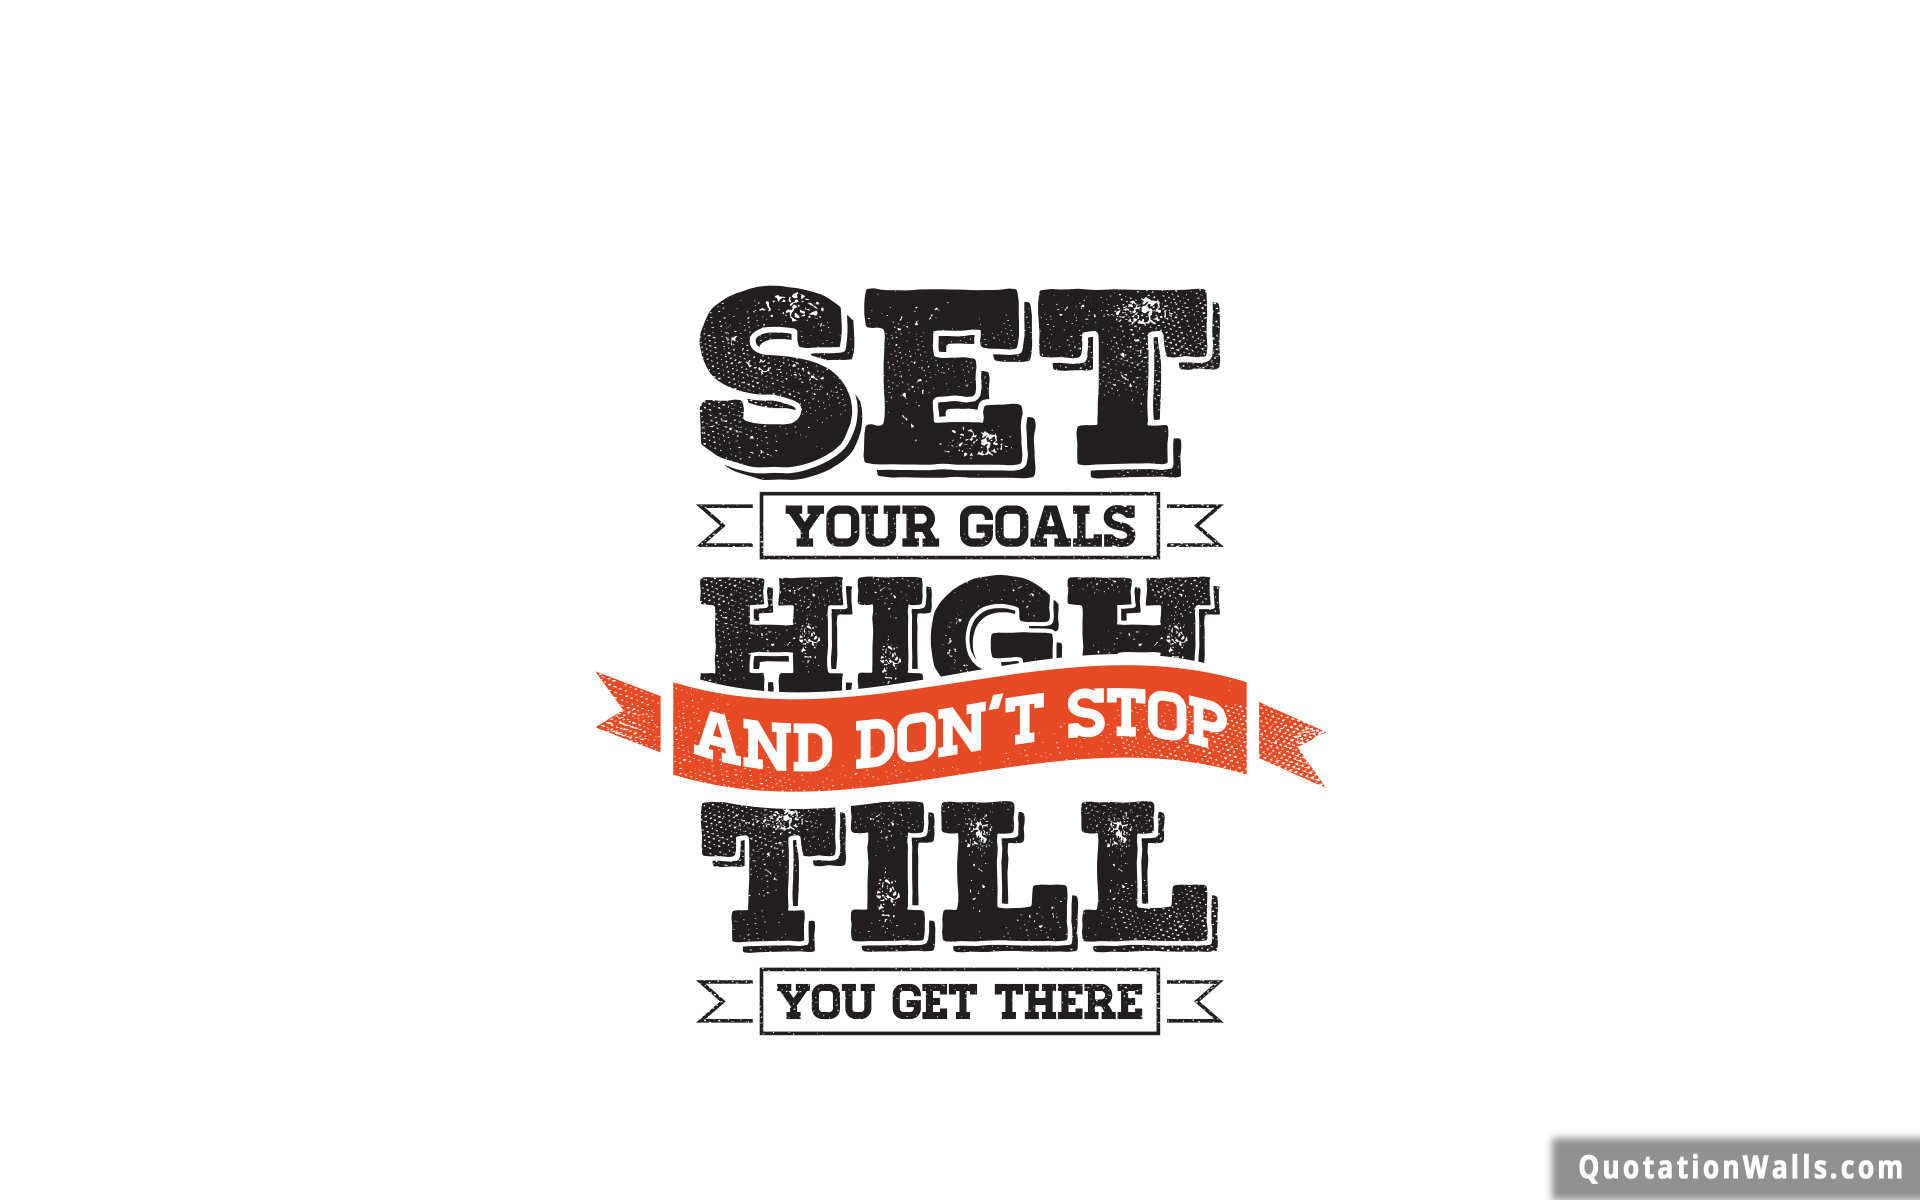 Goal Setting Wallpaper